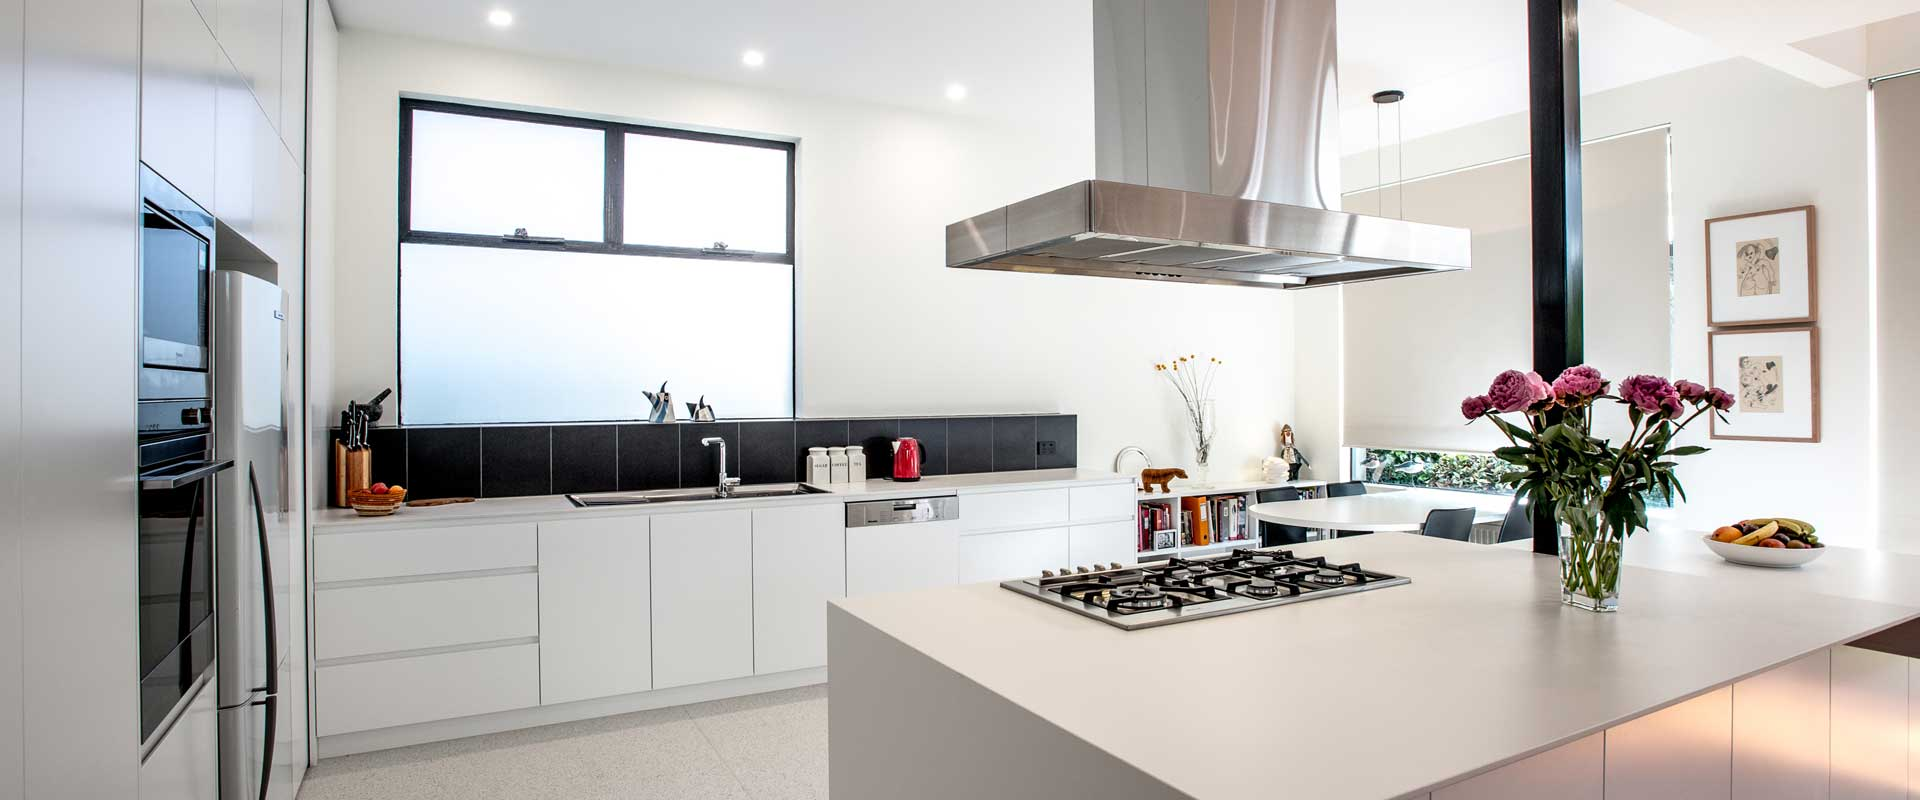 Why Is A Kitchen Renovation Necessary?